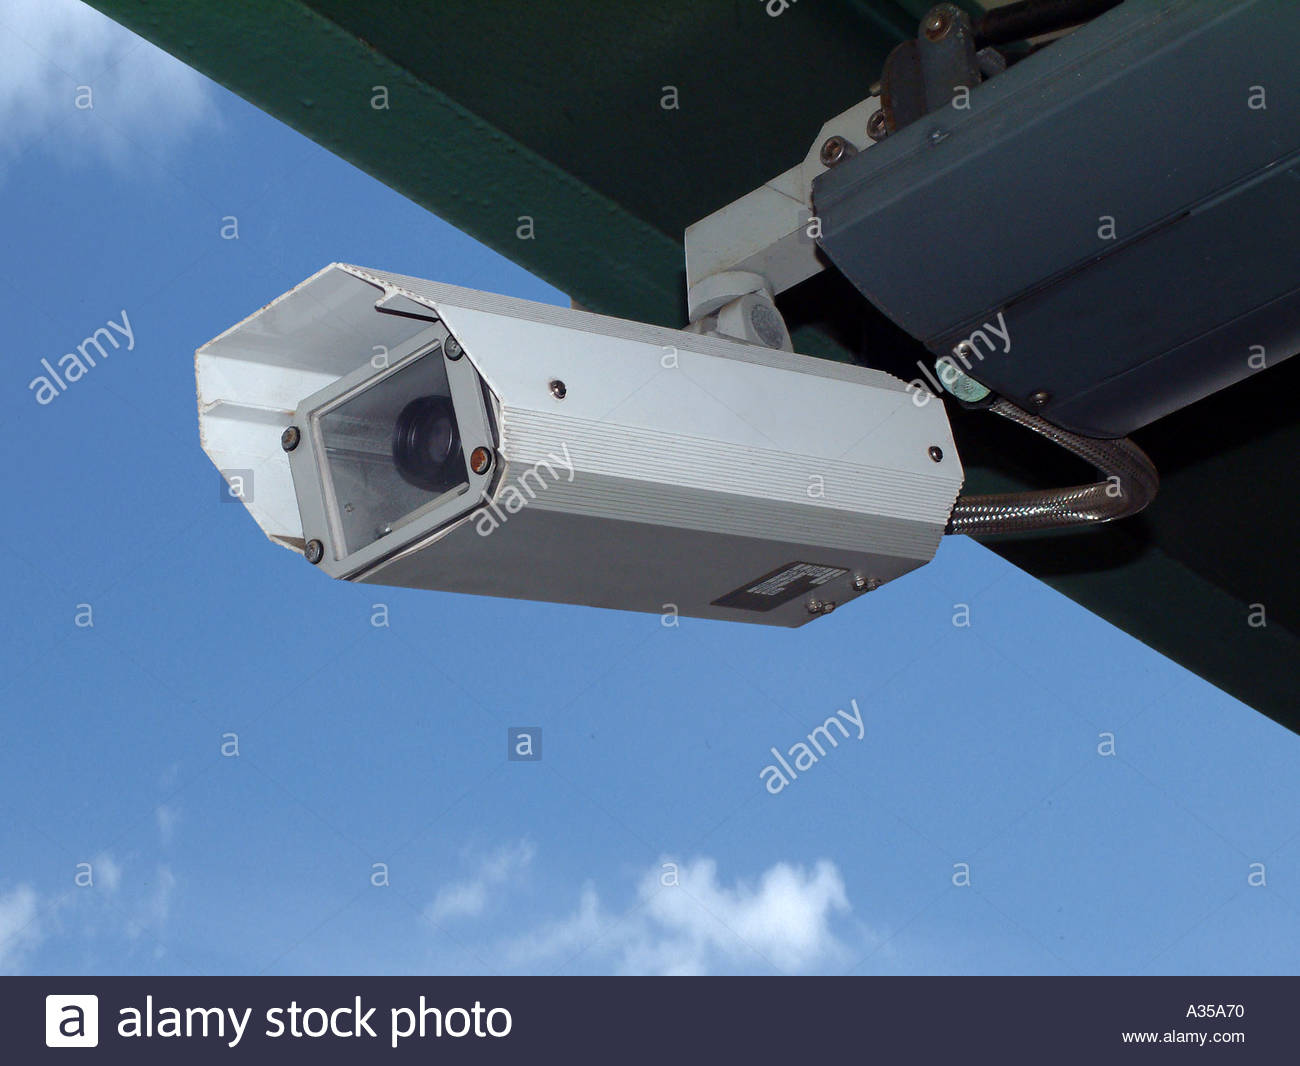 closed circuit television - Stock Image